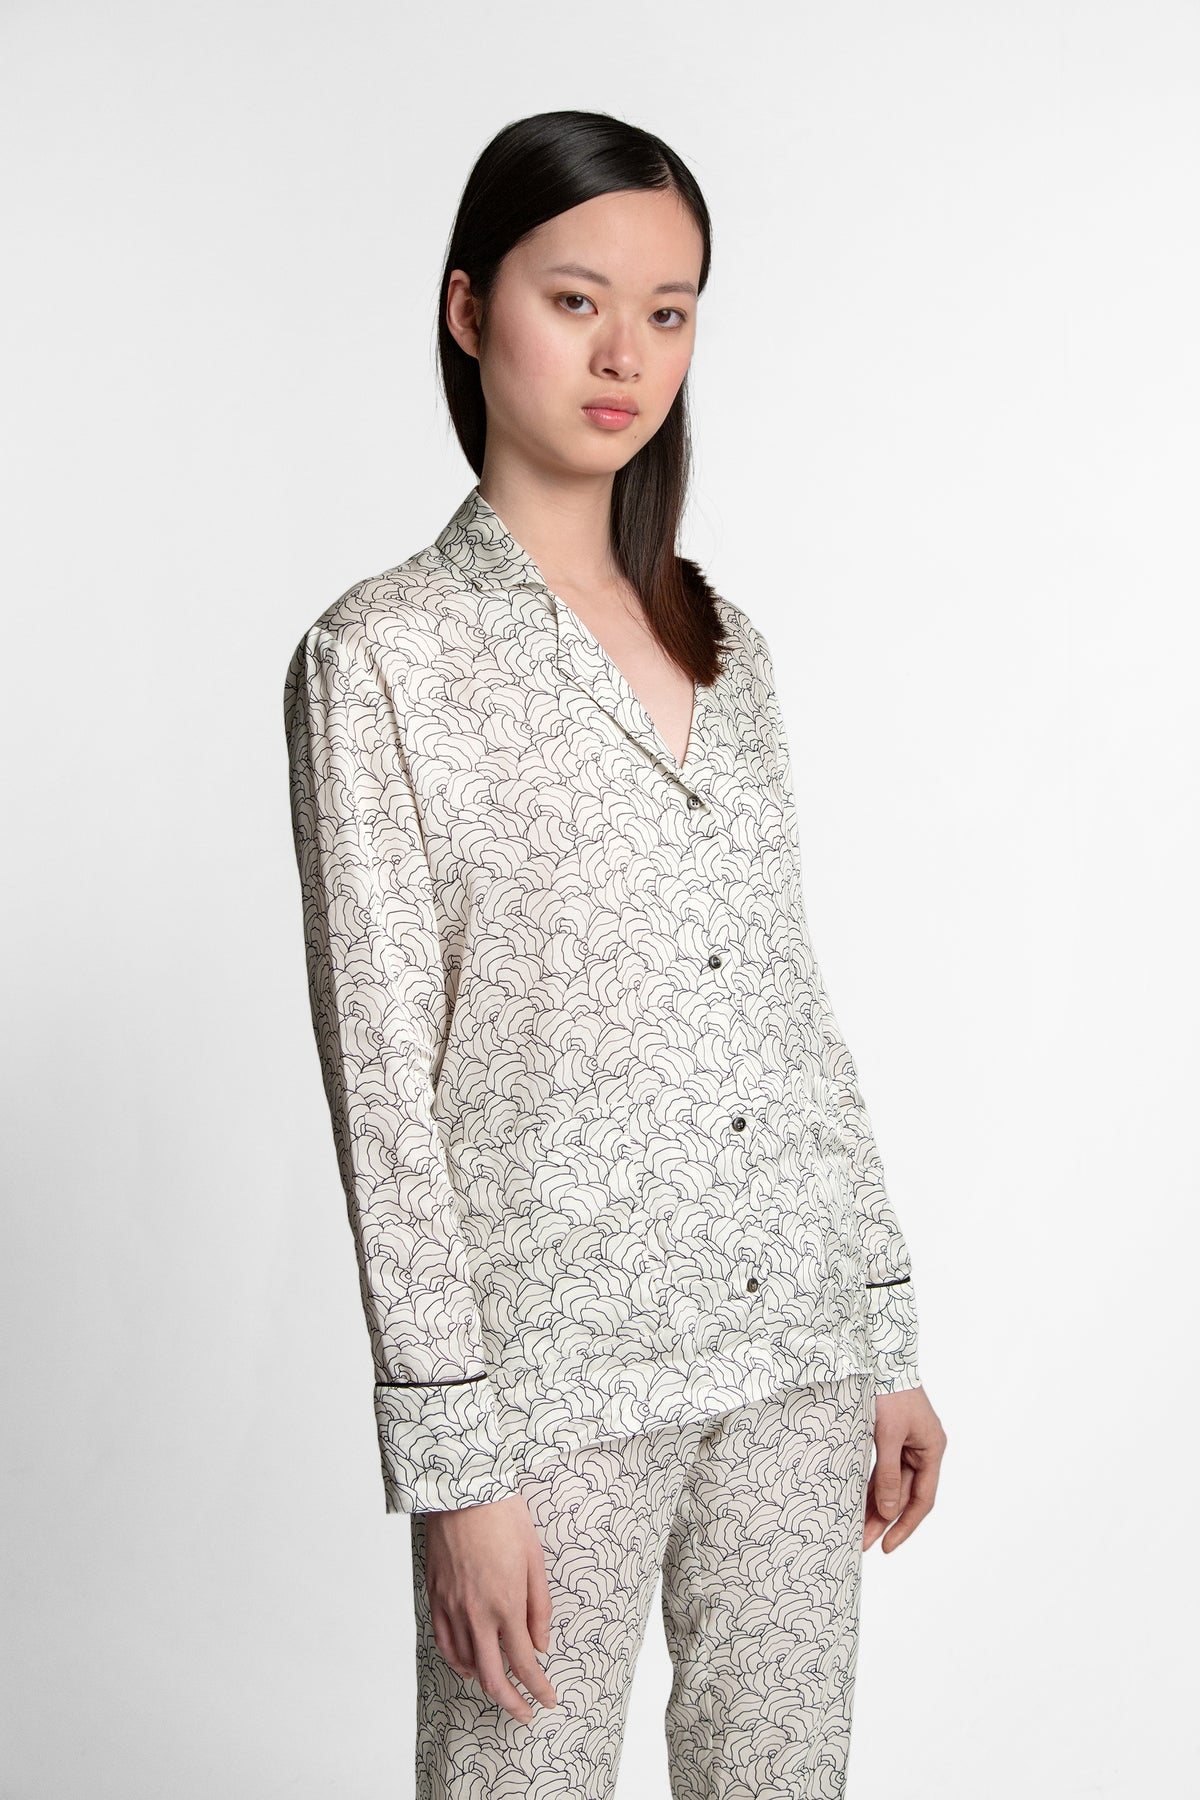 Ulysse pyjama in Three Seven print